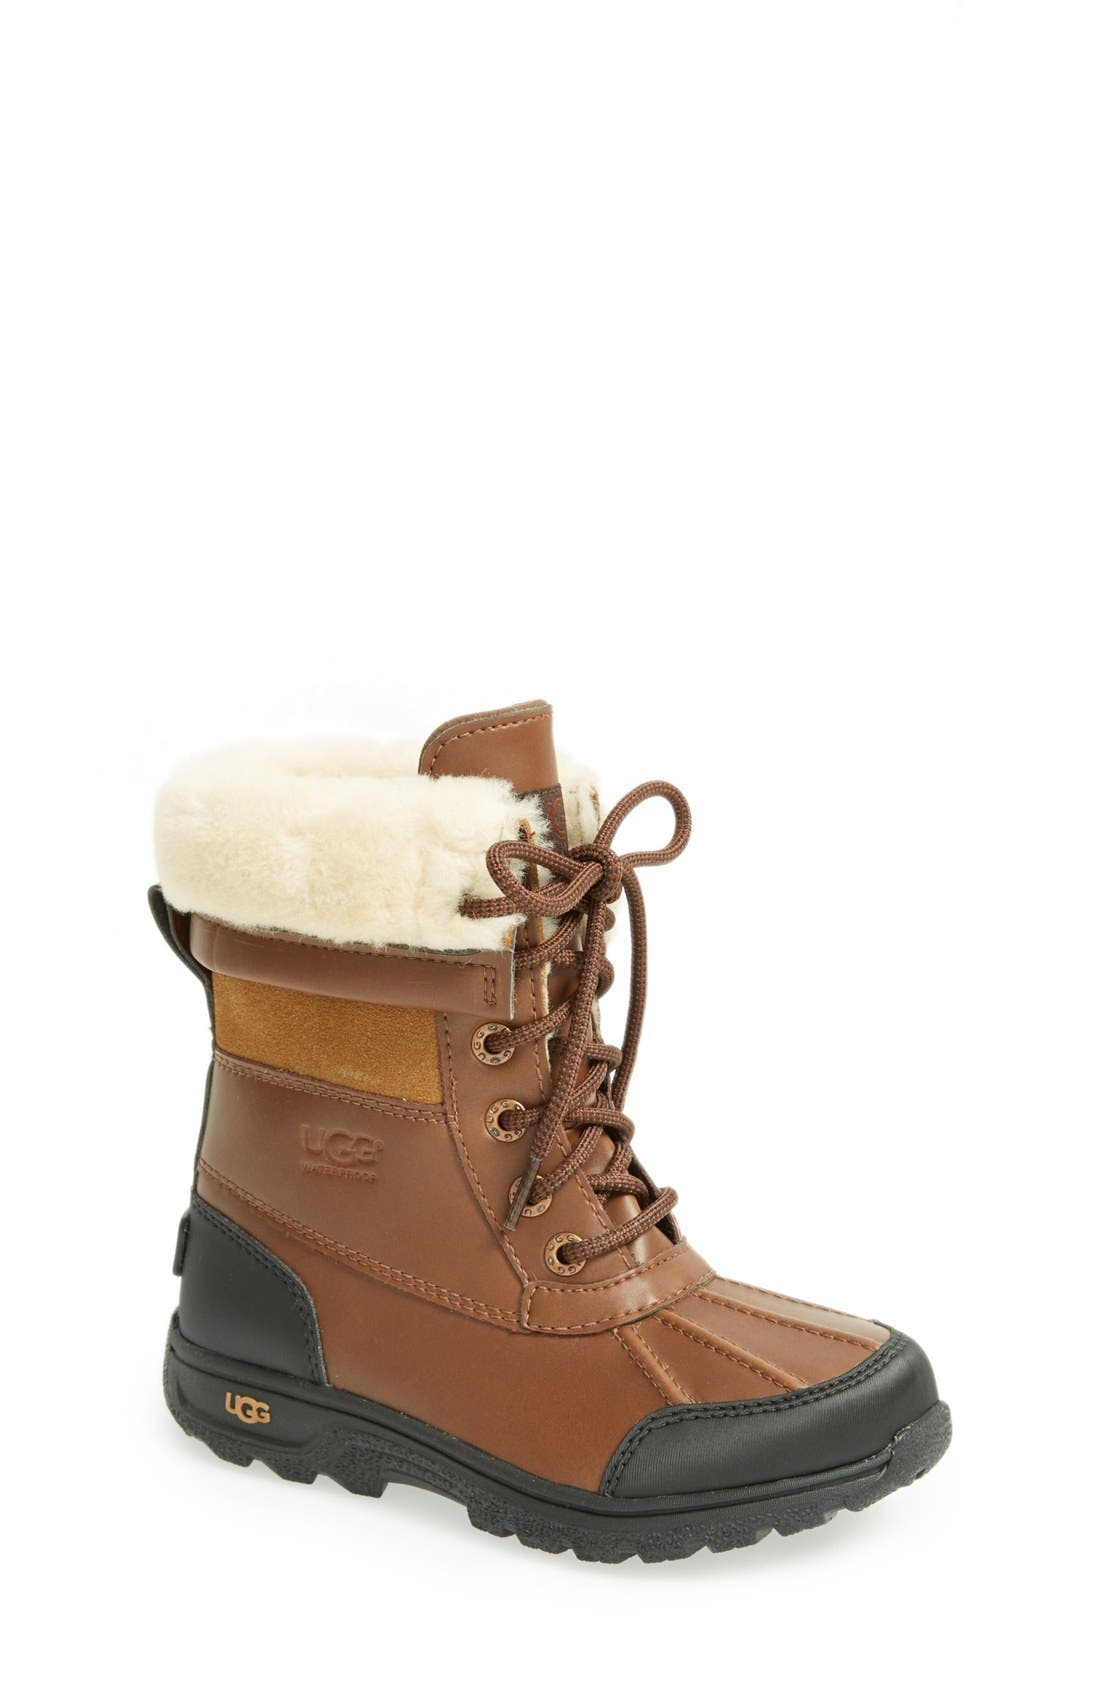 'Butte II' Waterproof Leather Boot,                         Main,                         color, Worchester